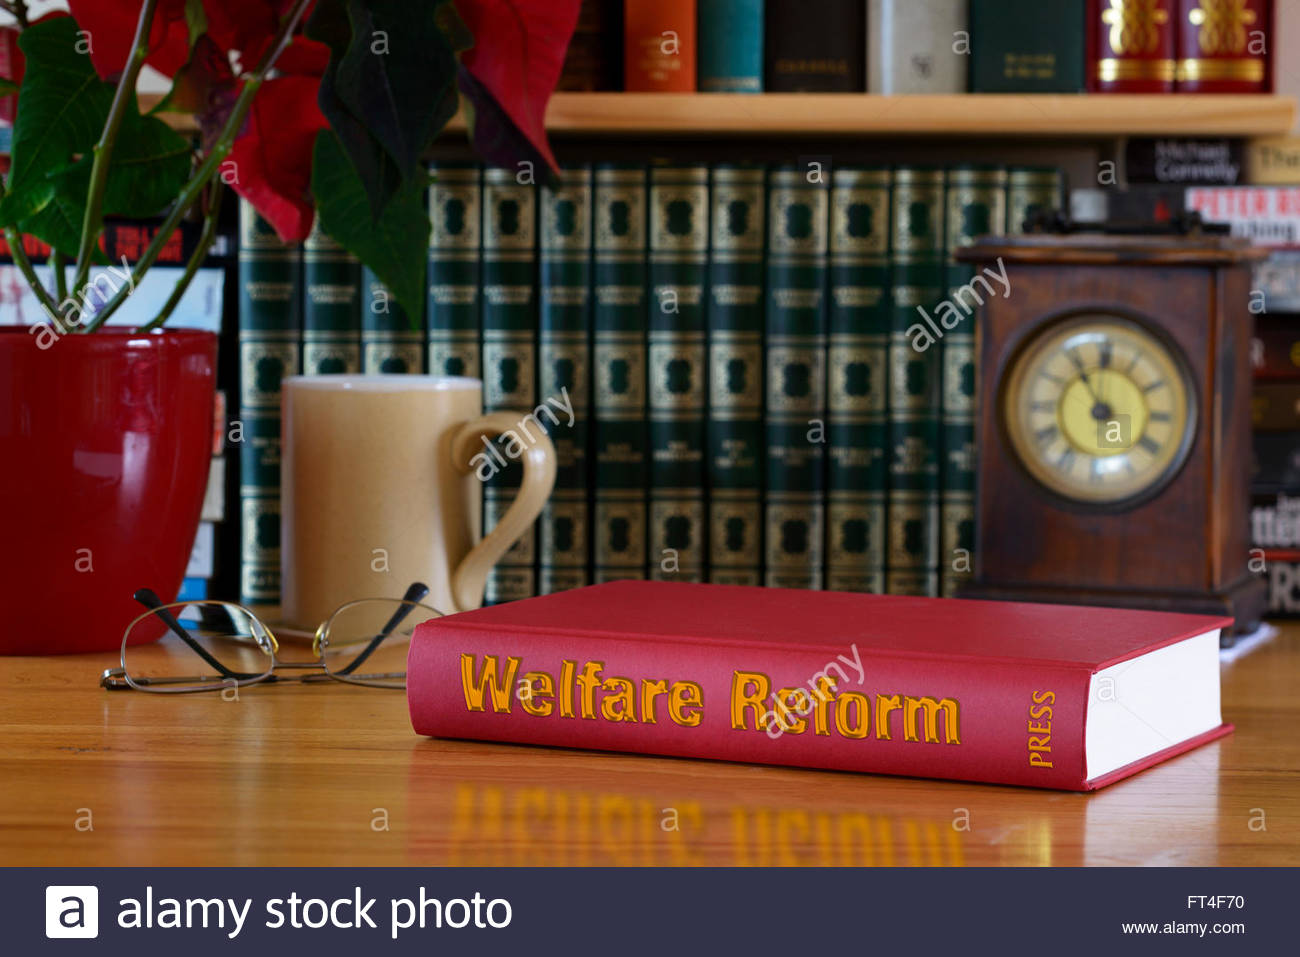 Welfare Reform book title, stacked used books, England Stock Photo